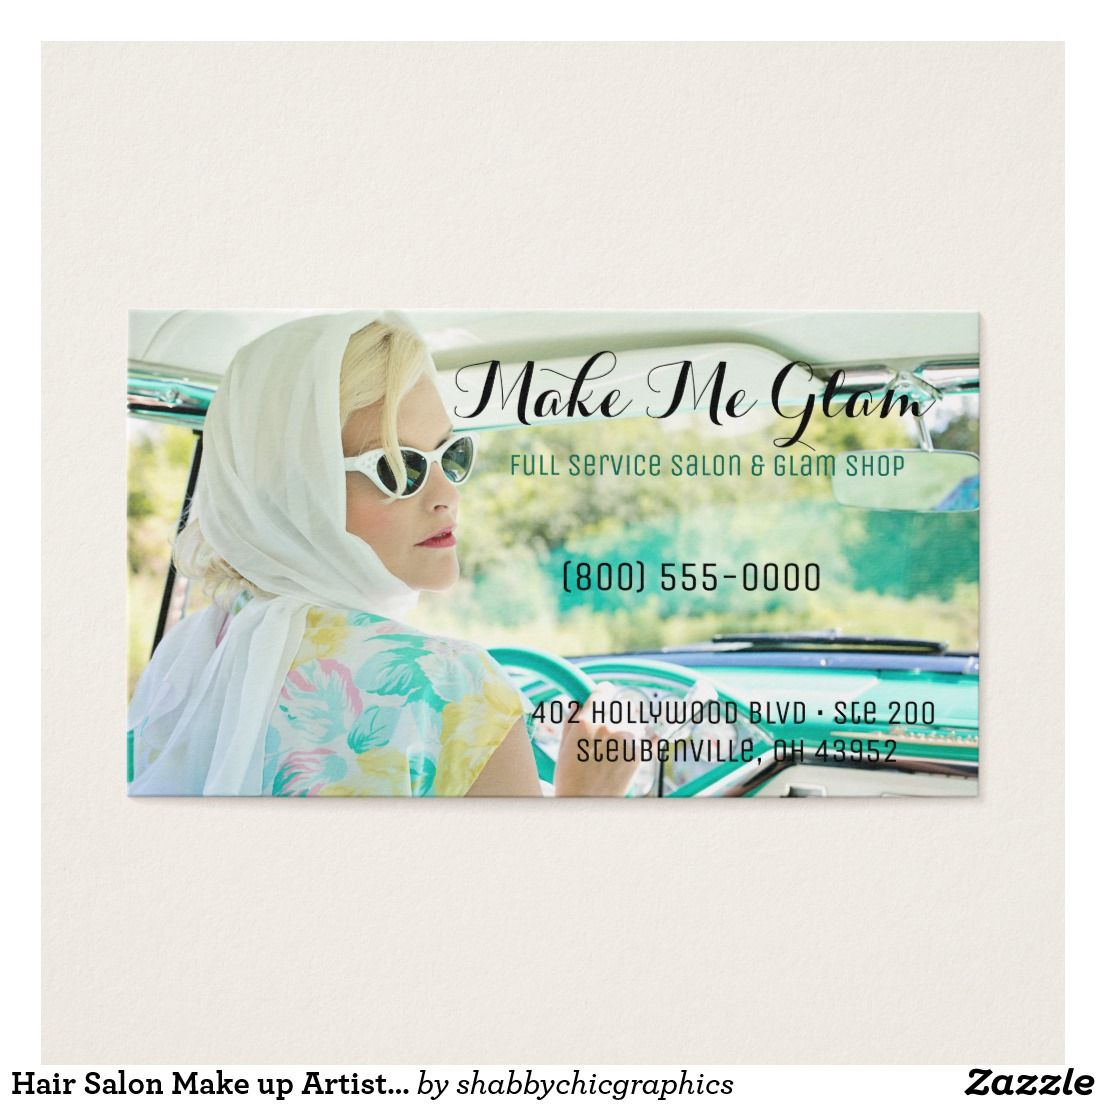 Hair Salon Make up Artist Glamorous Business Card | My business ...